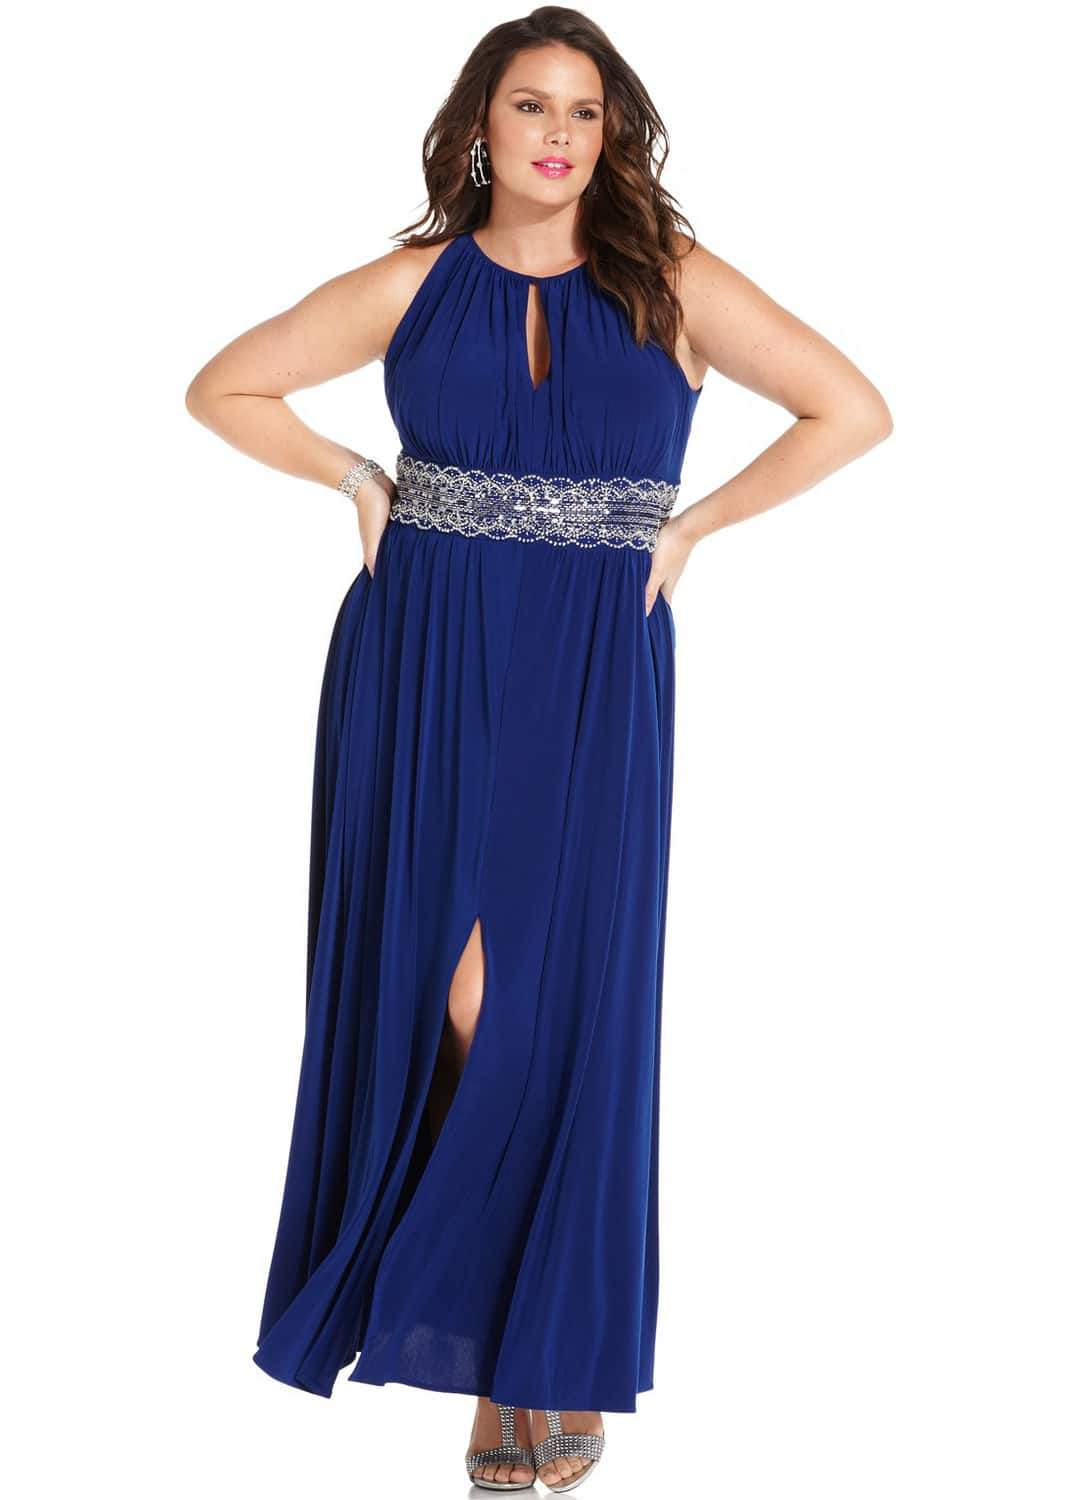 HD wallpapers plus size prom dresses at macys